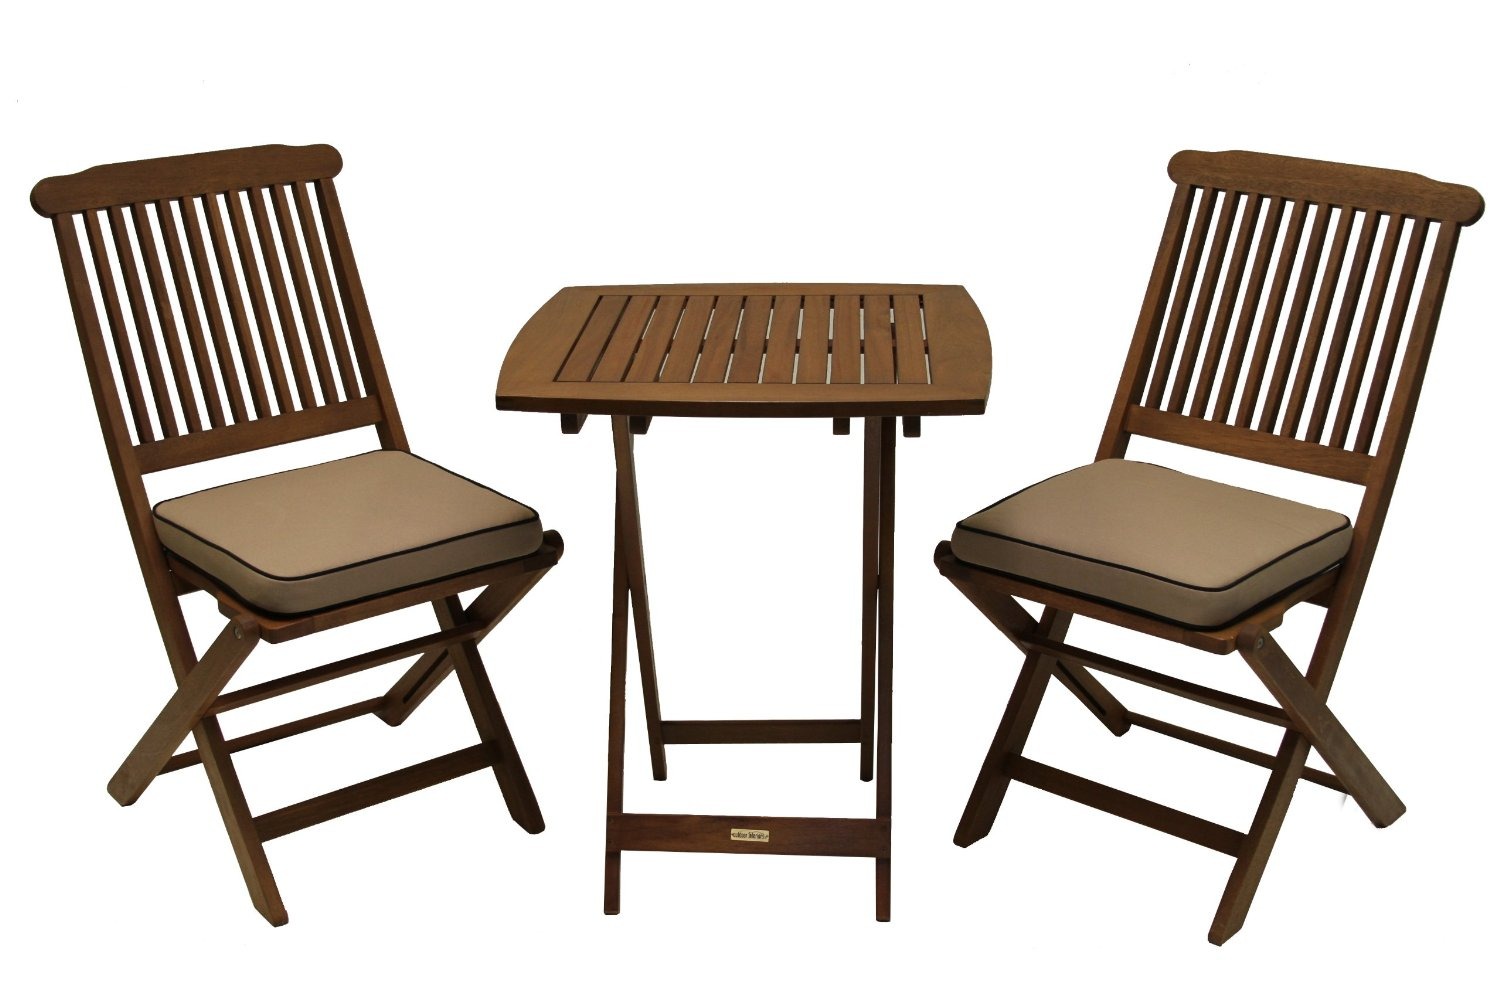 Patio furniture images july 2014 for Outdoor furniture images